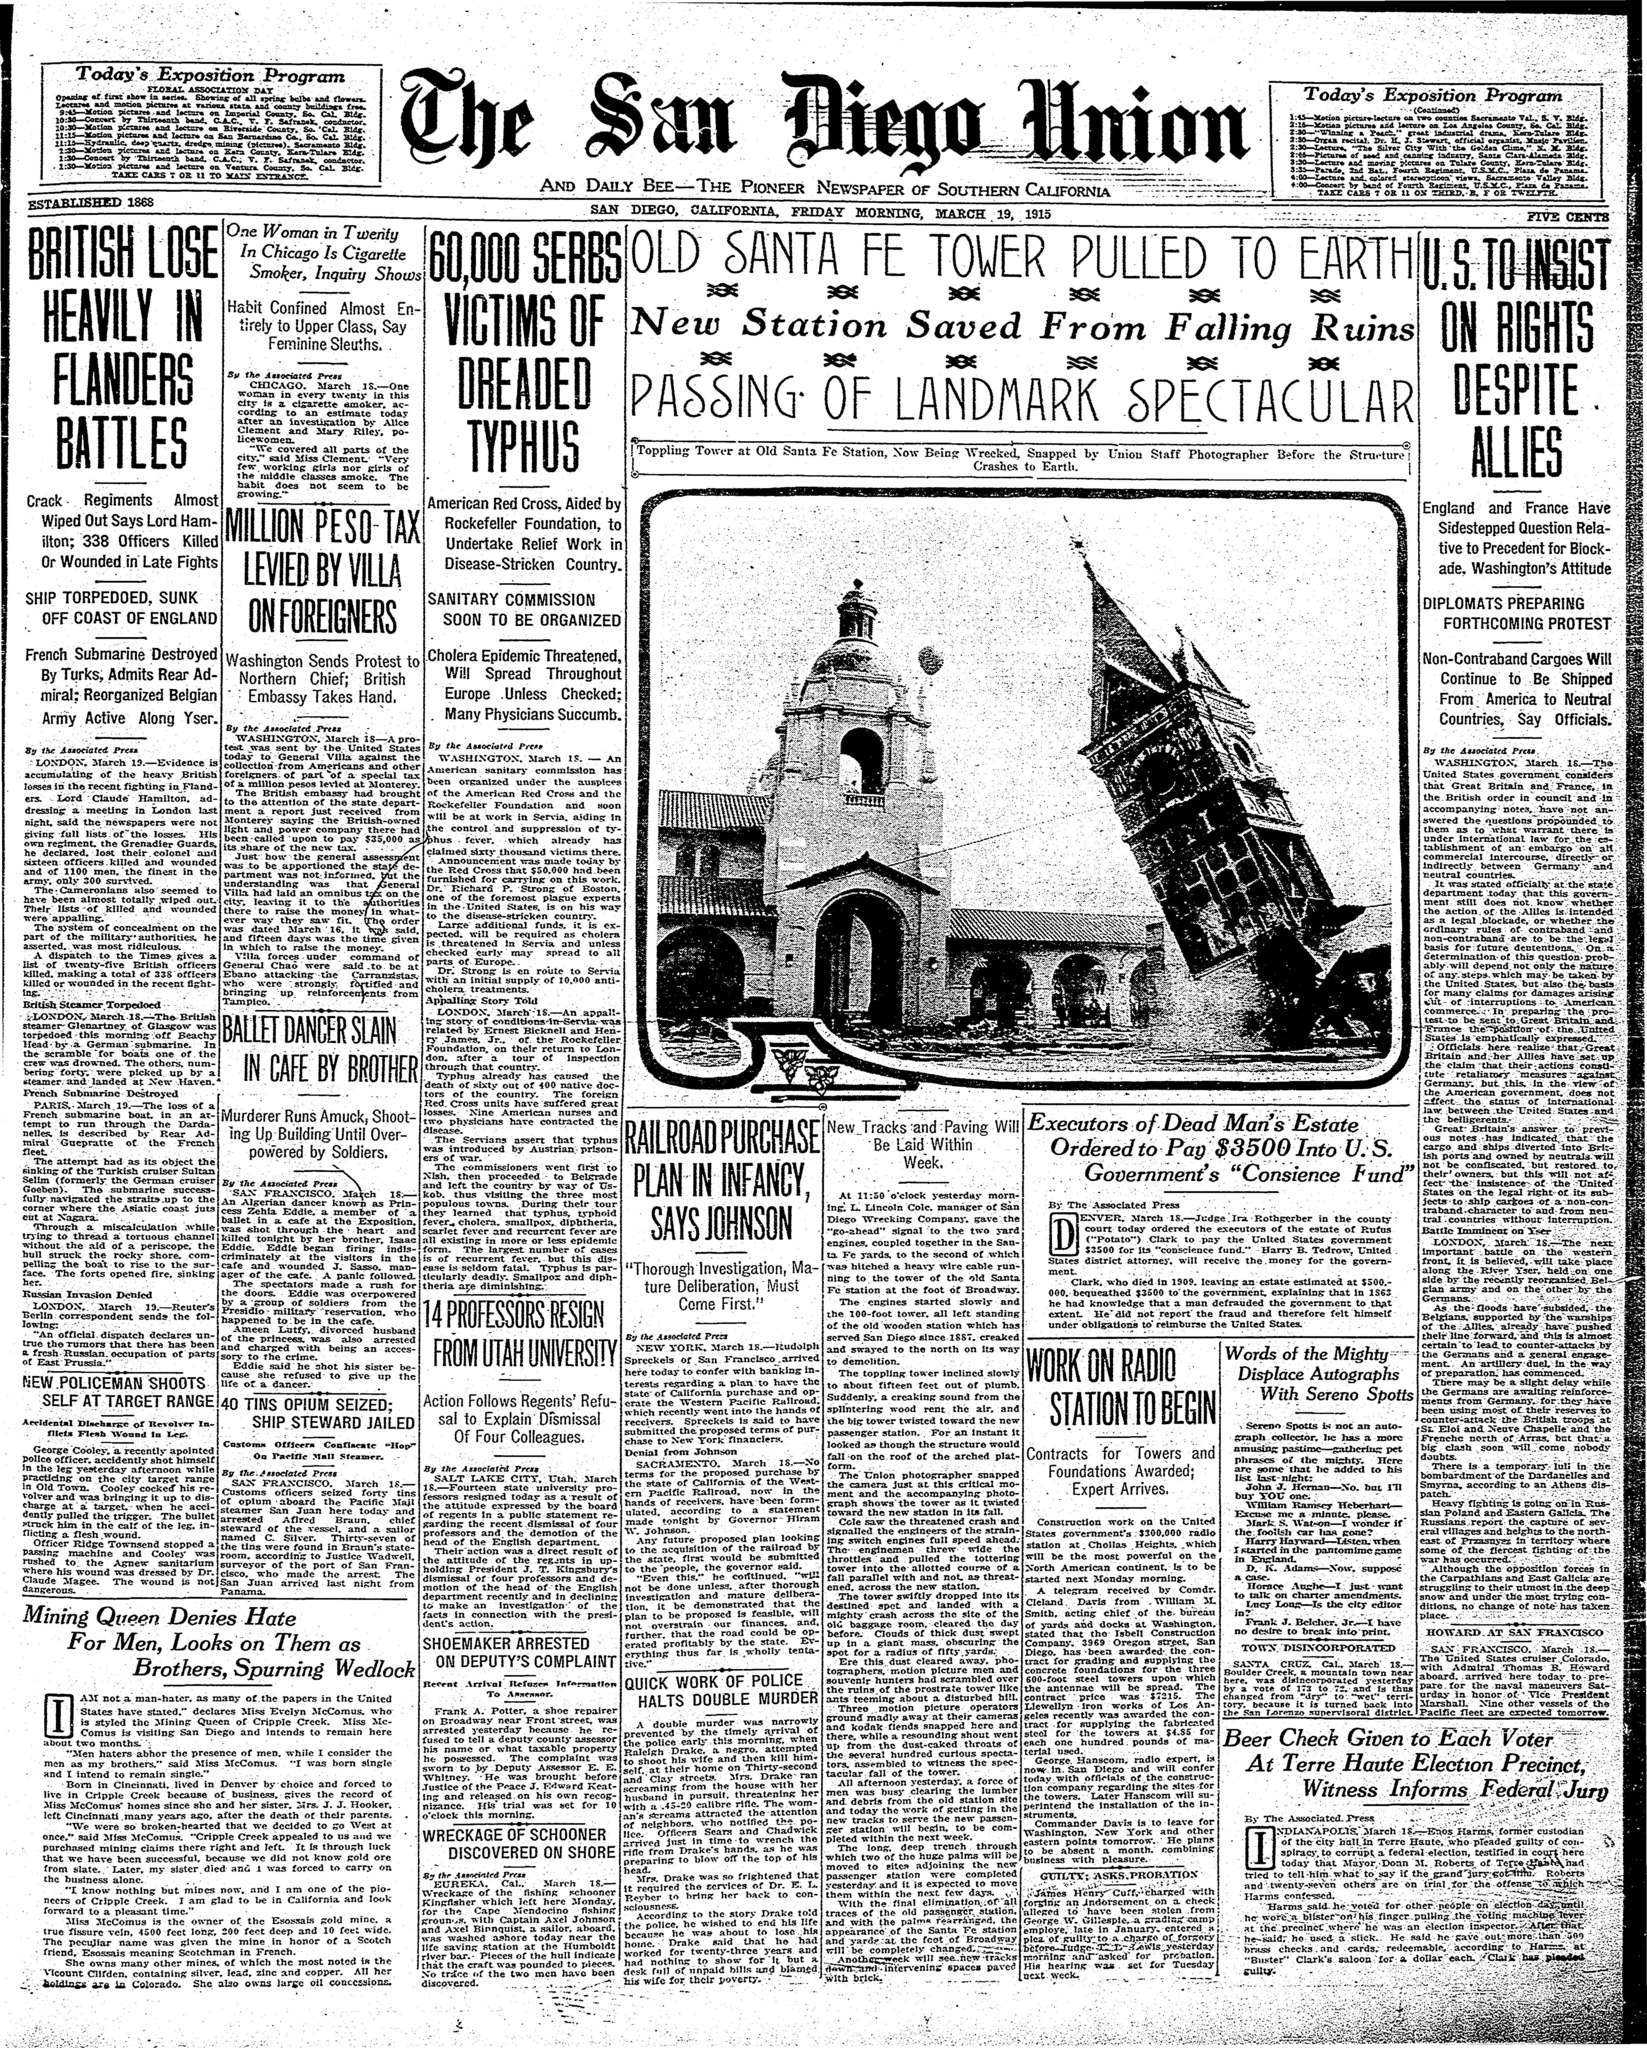 March 19, 1915